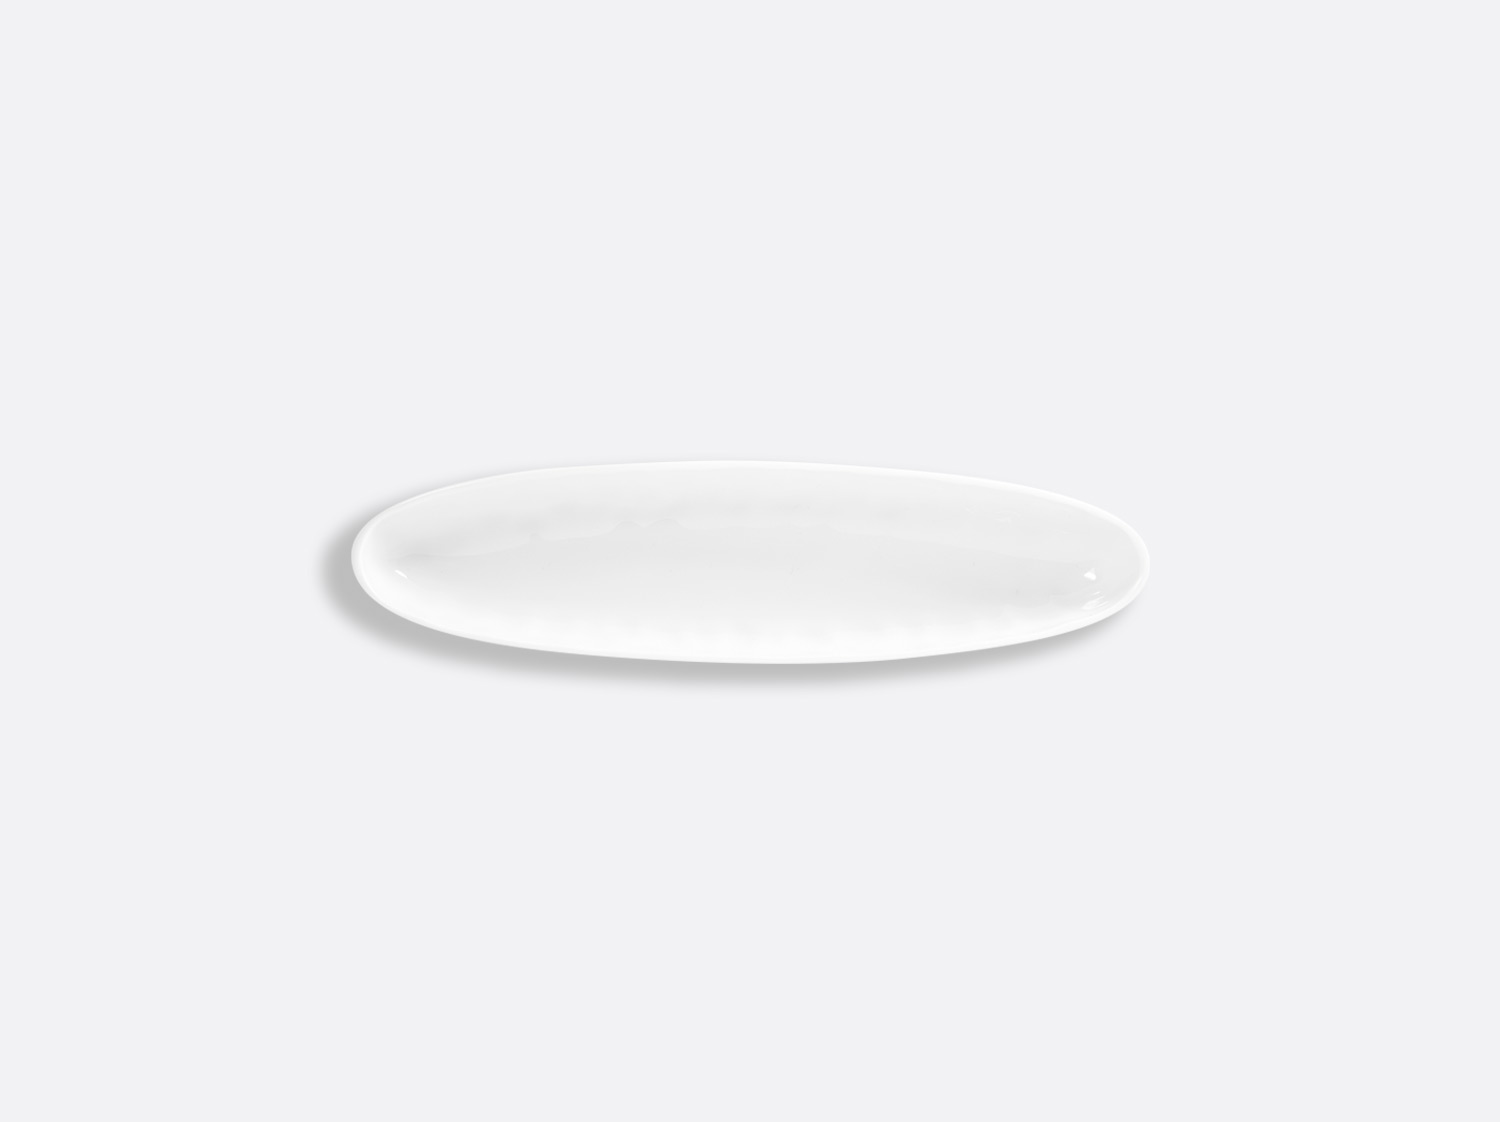 Coupelle ovale creuse 21,5 x 5 cm en porcelaine de la collection EMPREINTE Bernardaud